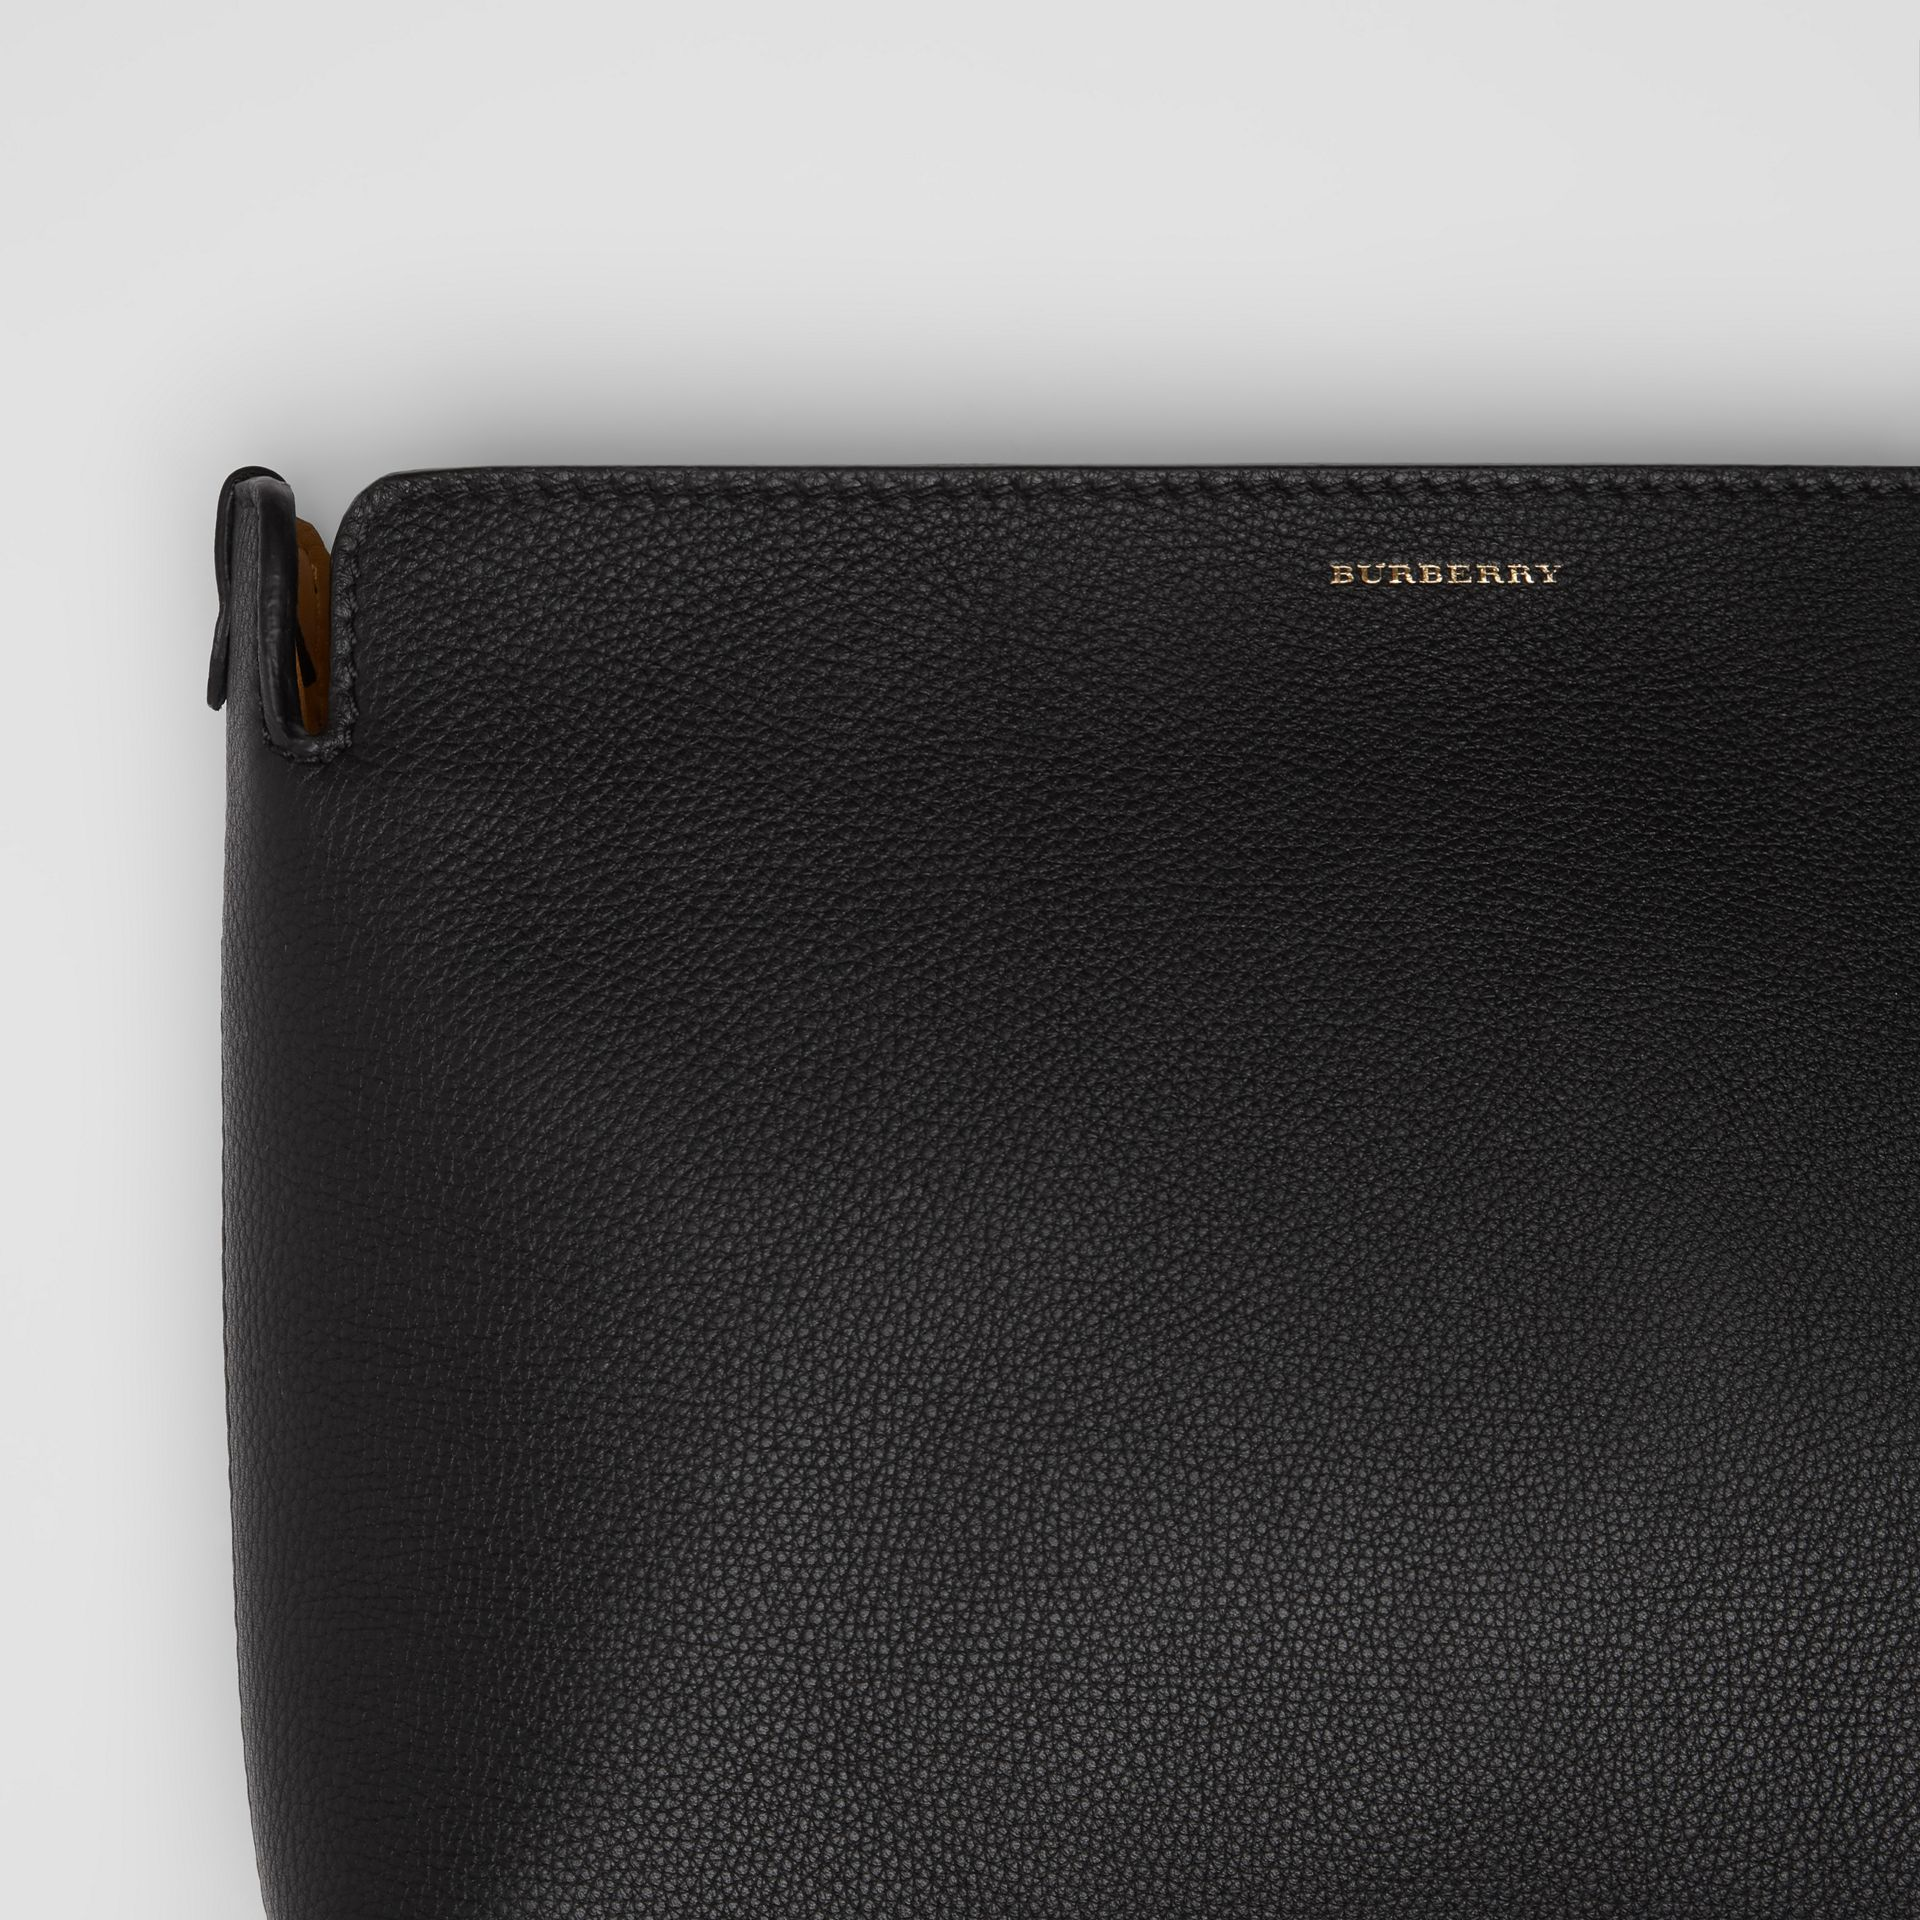 Medium Tri-tone Leather Clutch in Black/sea Green - Women | Burberry Singapore - gallery image 1